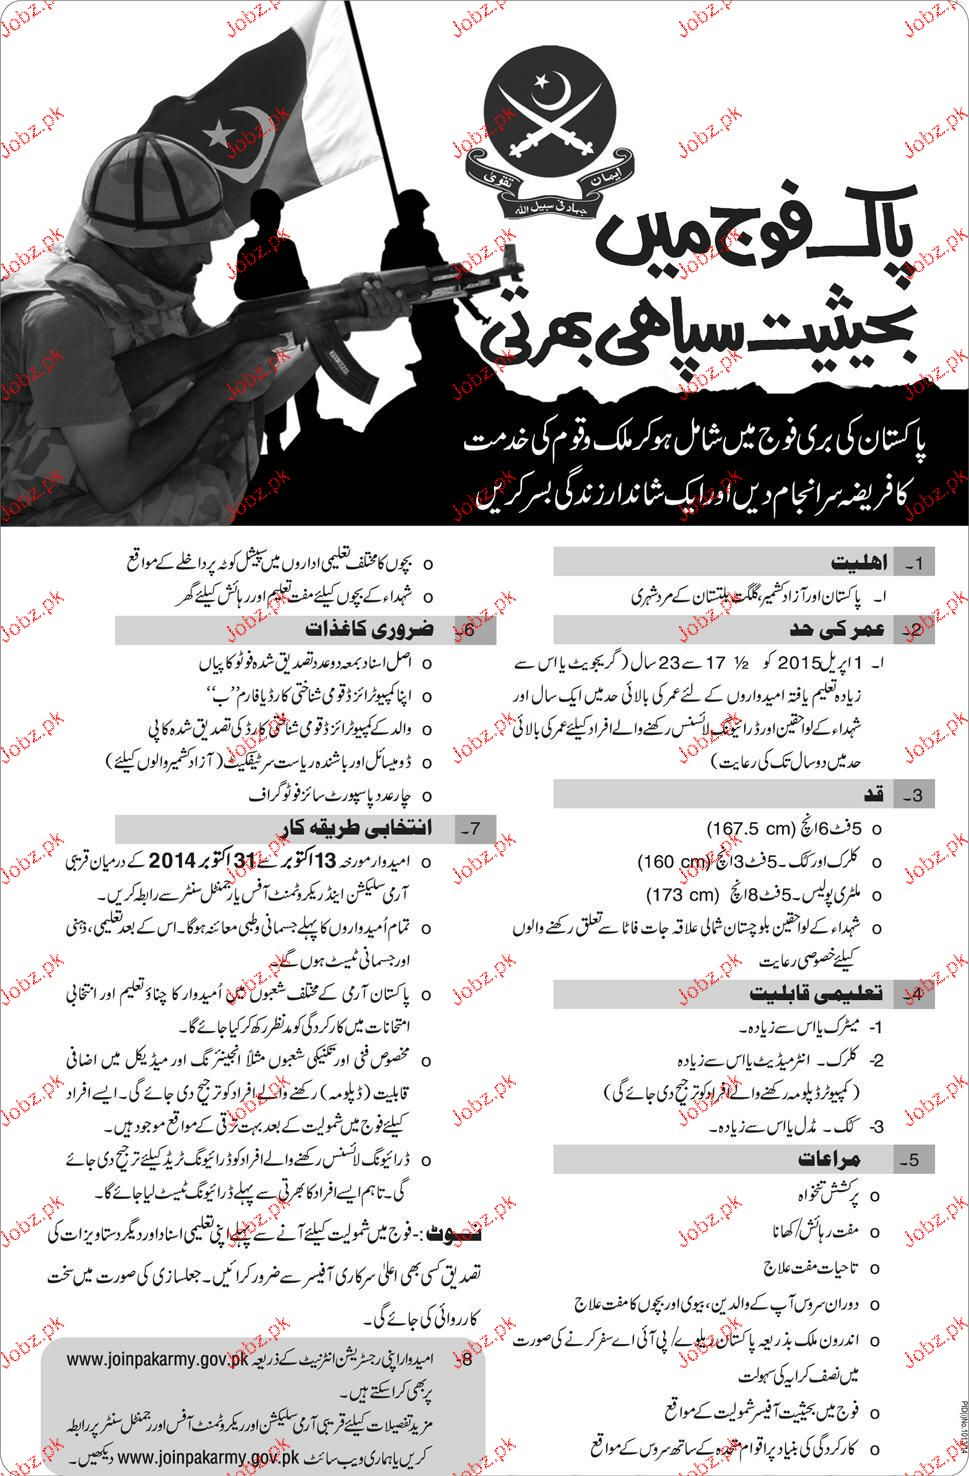 recruitment of seaopy in pakistan army 2019 job